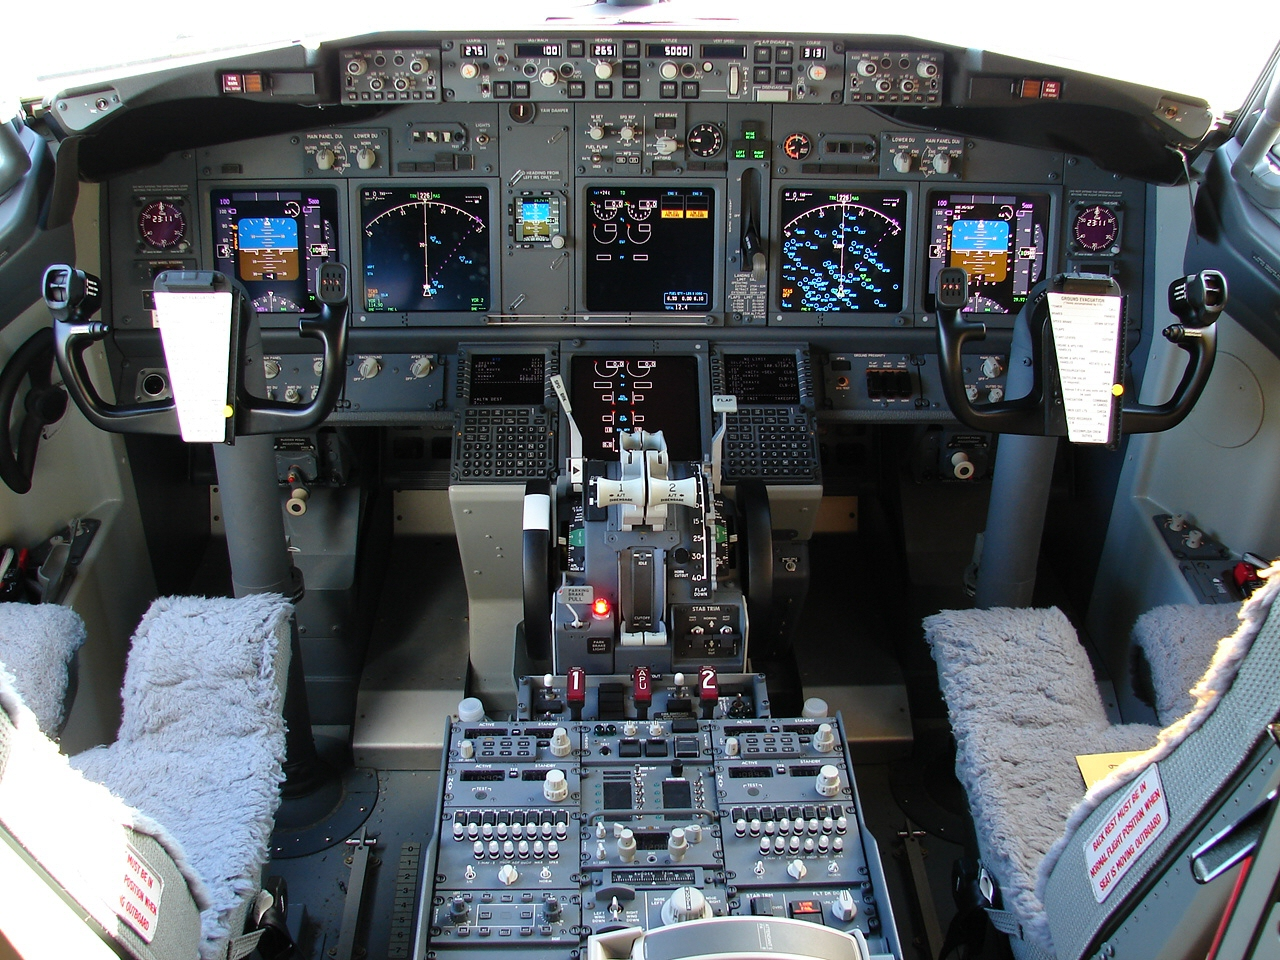 Photo of 737-800 flight deck